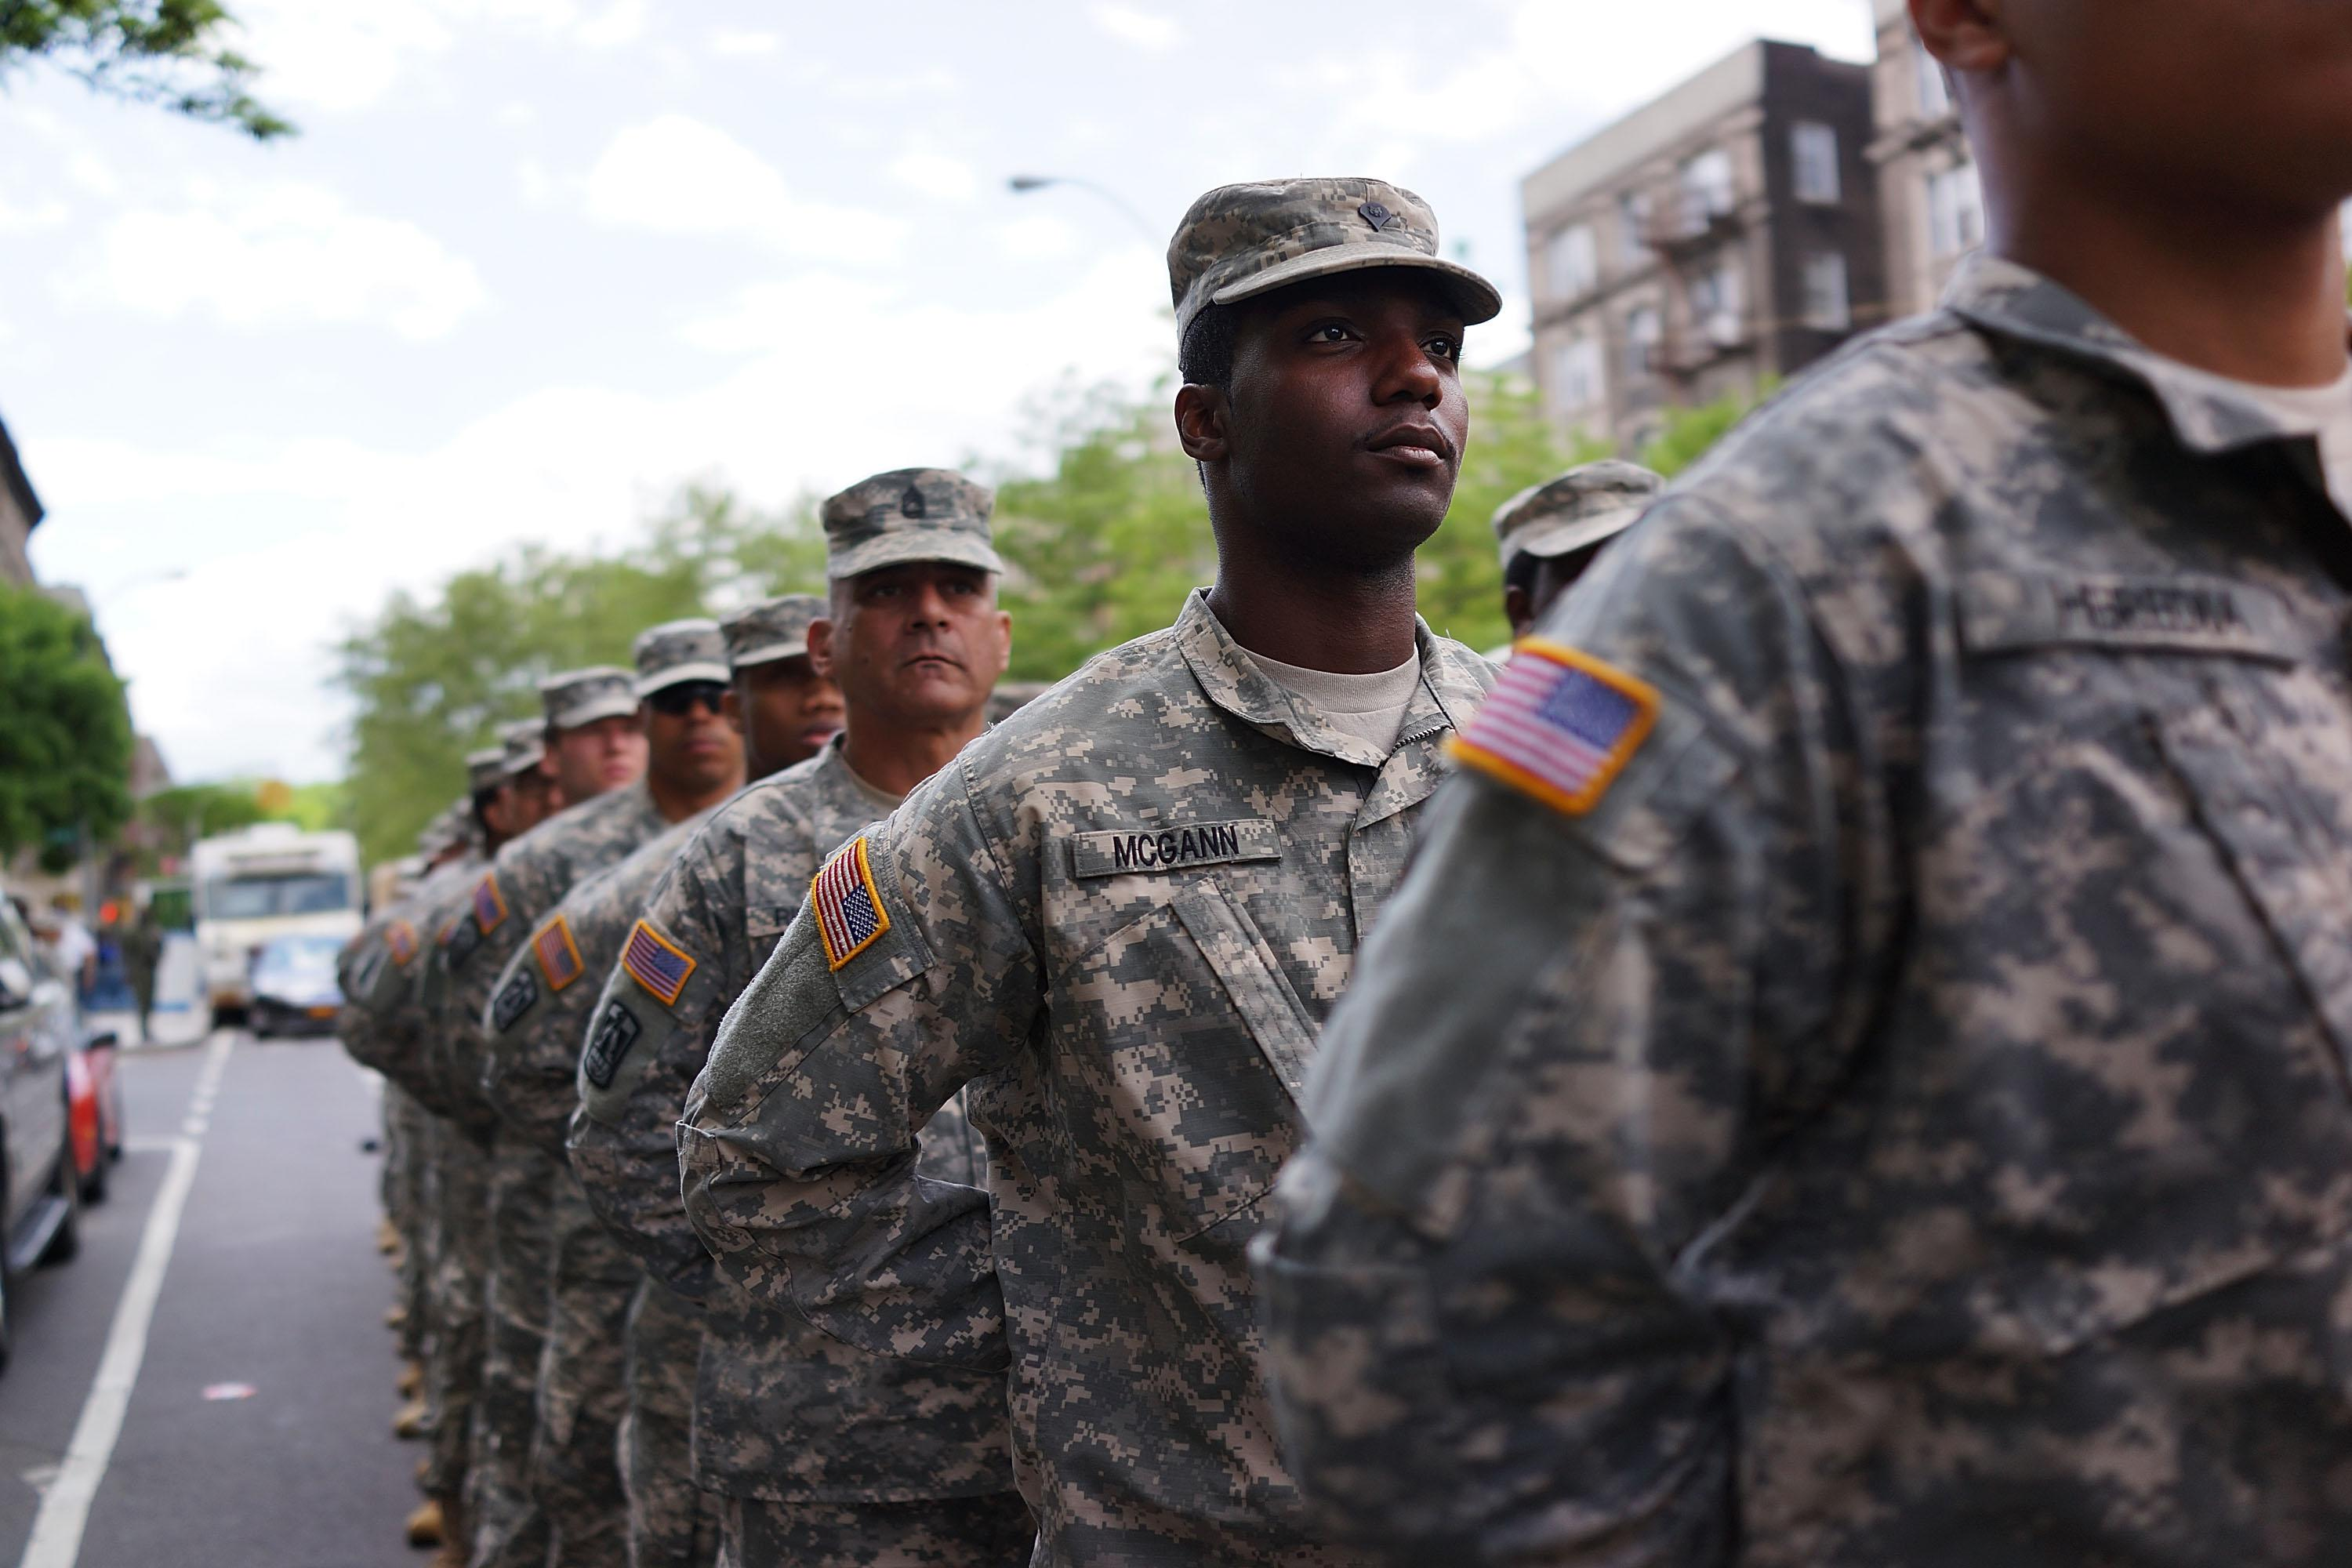 Harlem Parade Honors African-American Army Regiment From WWII